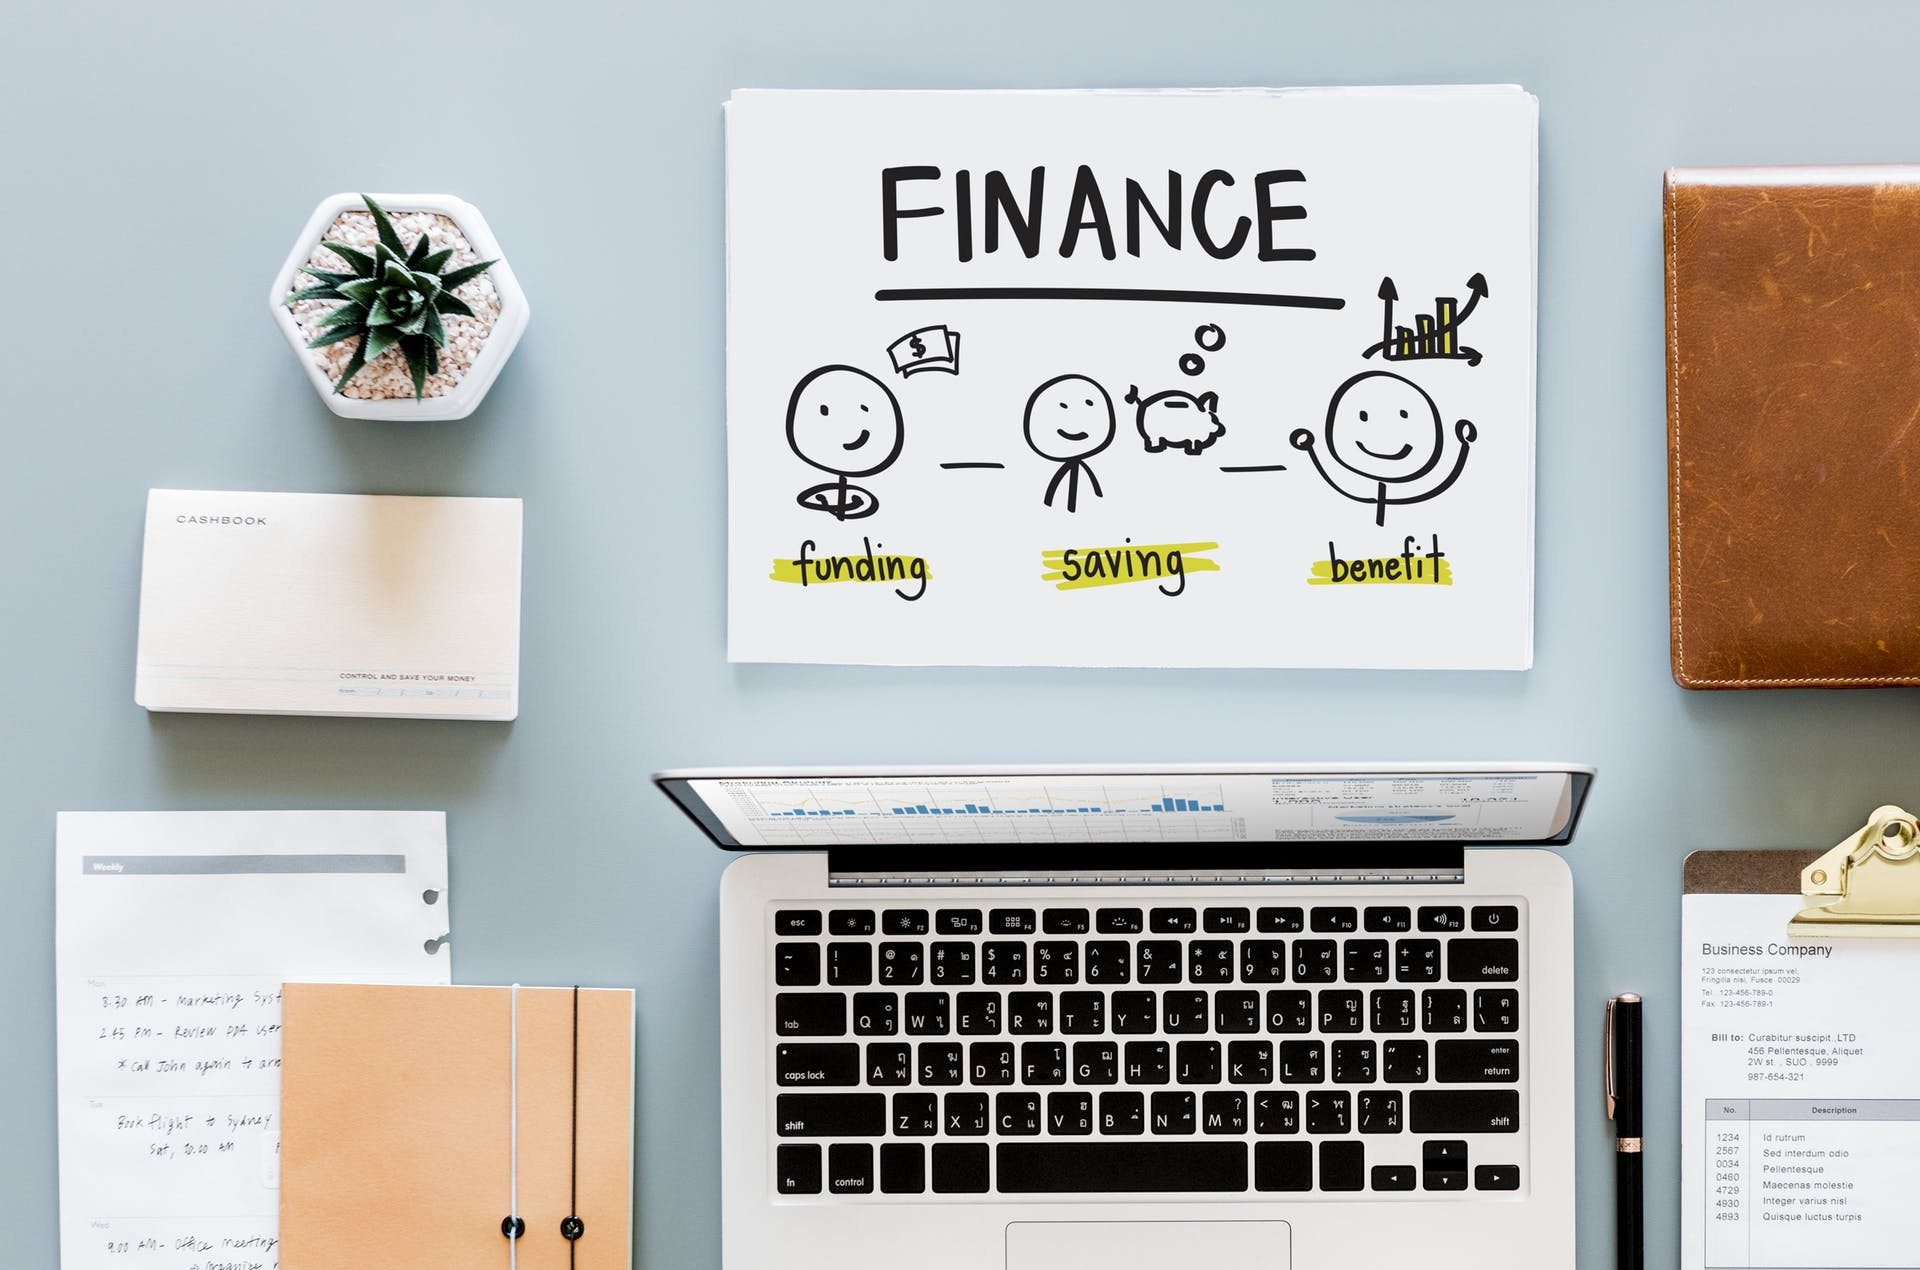 financial business plan modern savings pen indoors office contemporary plant close-up